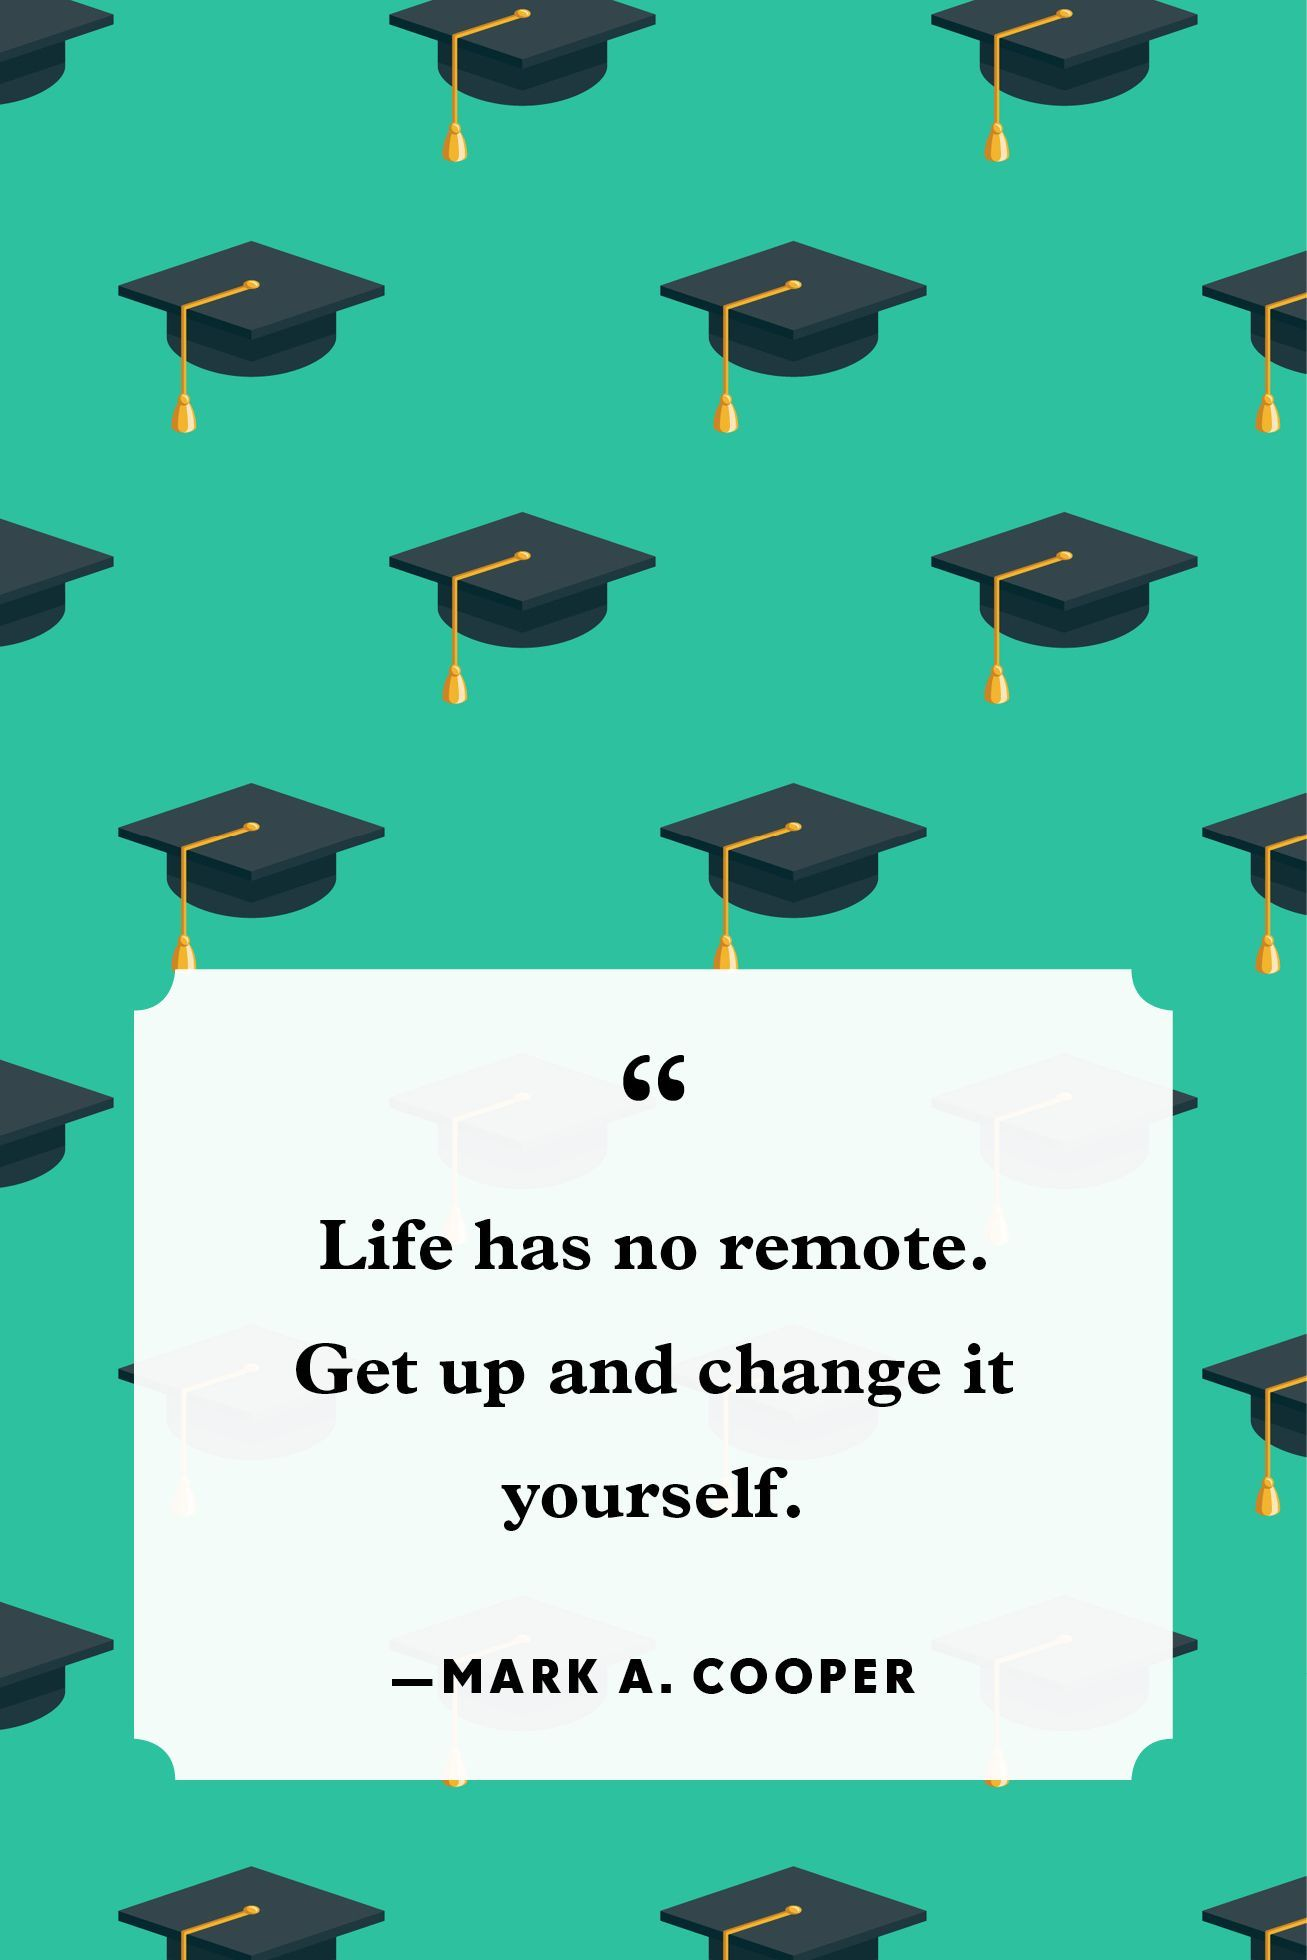 30 Funny Graduation Quotes To Make Your Recent Grad Smile Graduation Quotes Graduation Quotes Funny Graduation Day Quotes